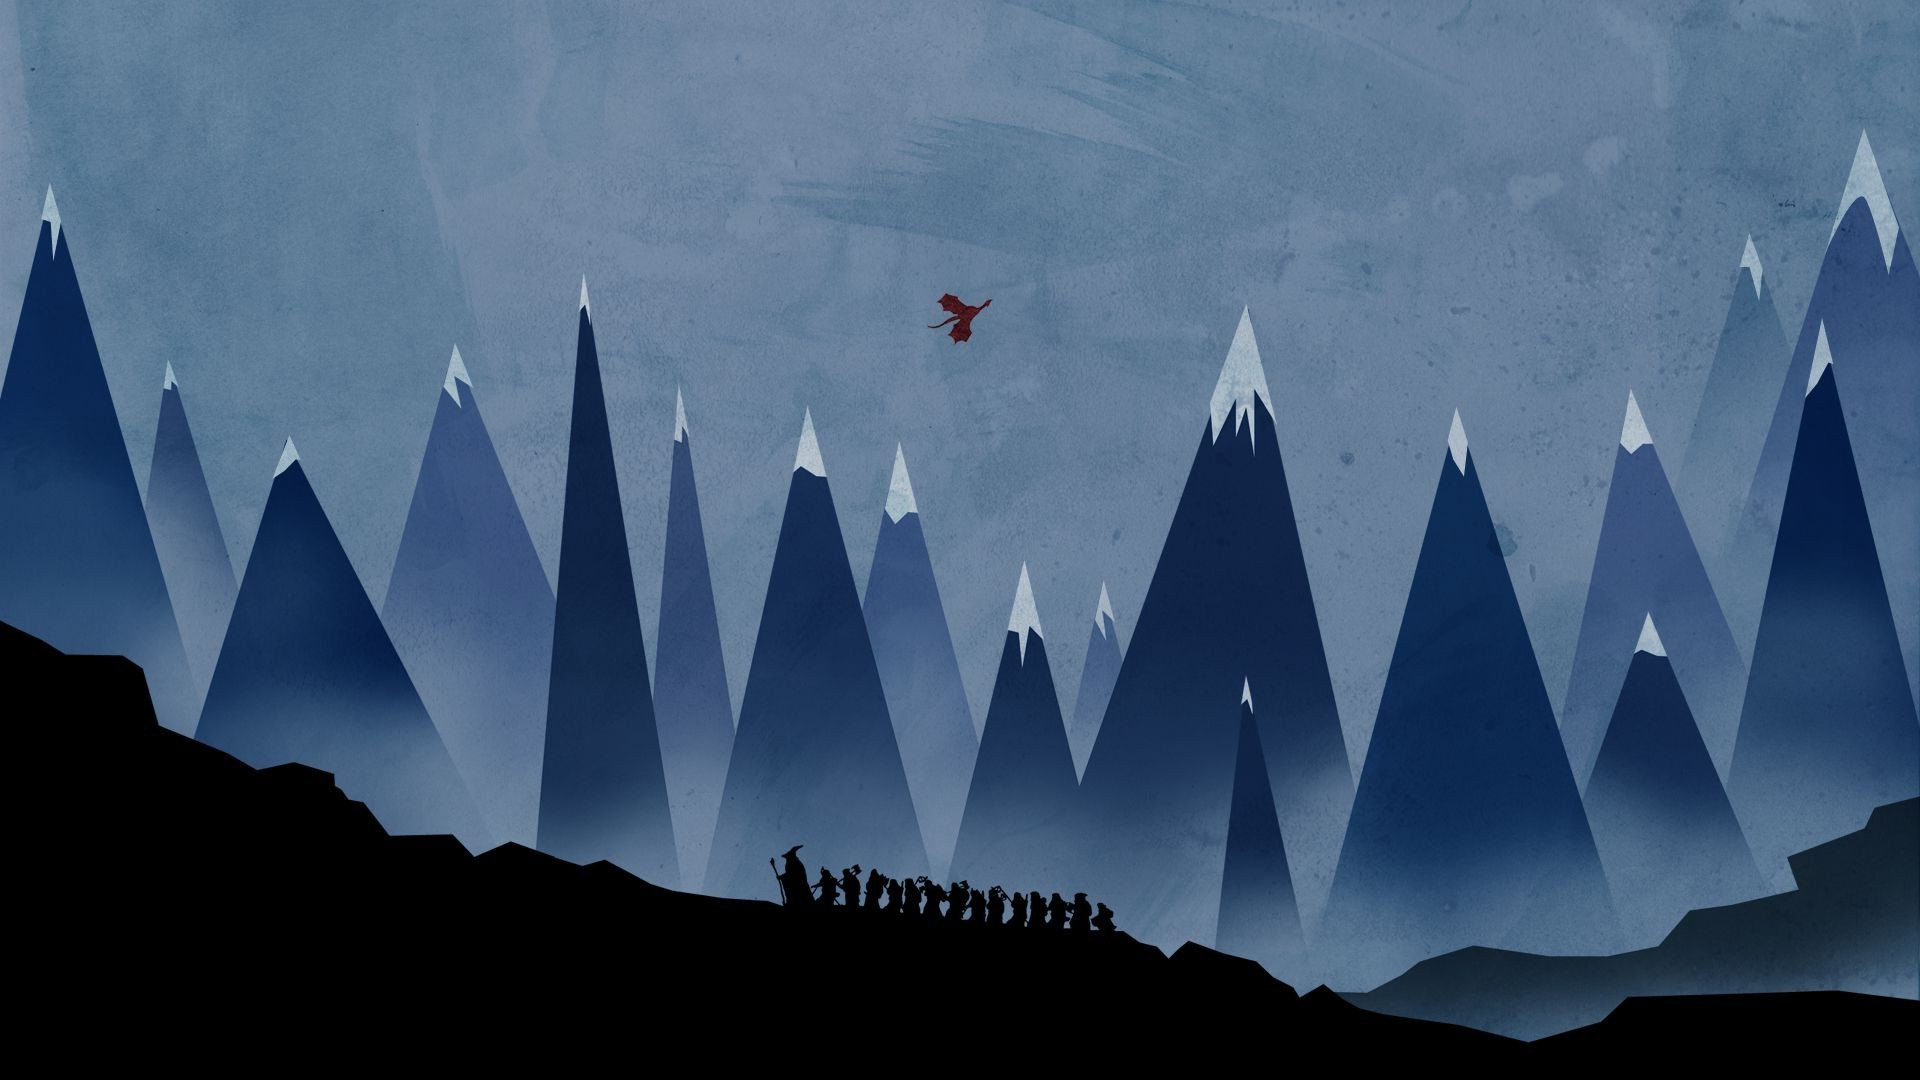 abstract The Lord Of The Rings The Hobbit Wallpapers HD 1920x1080